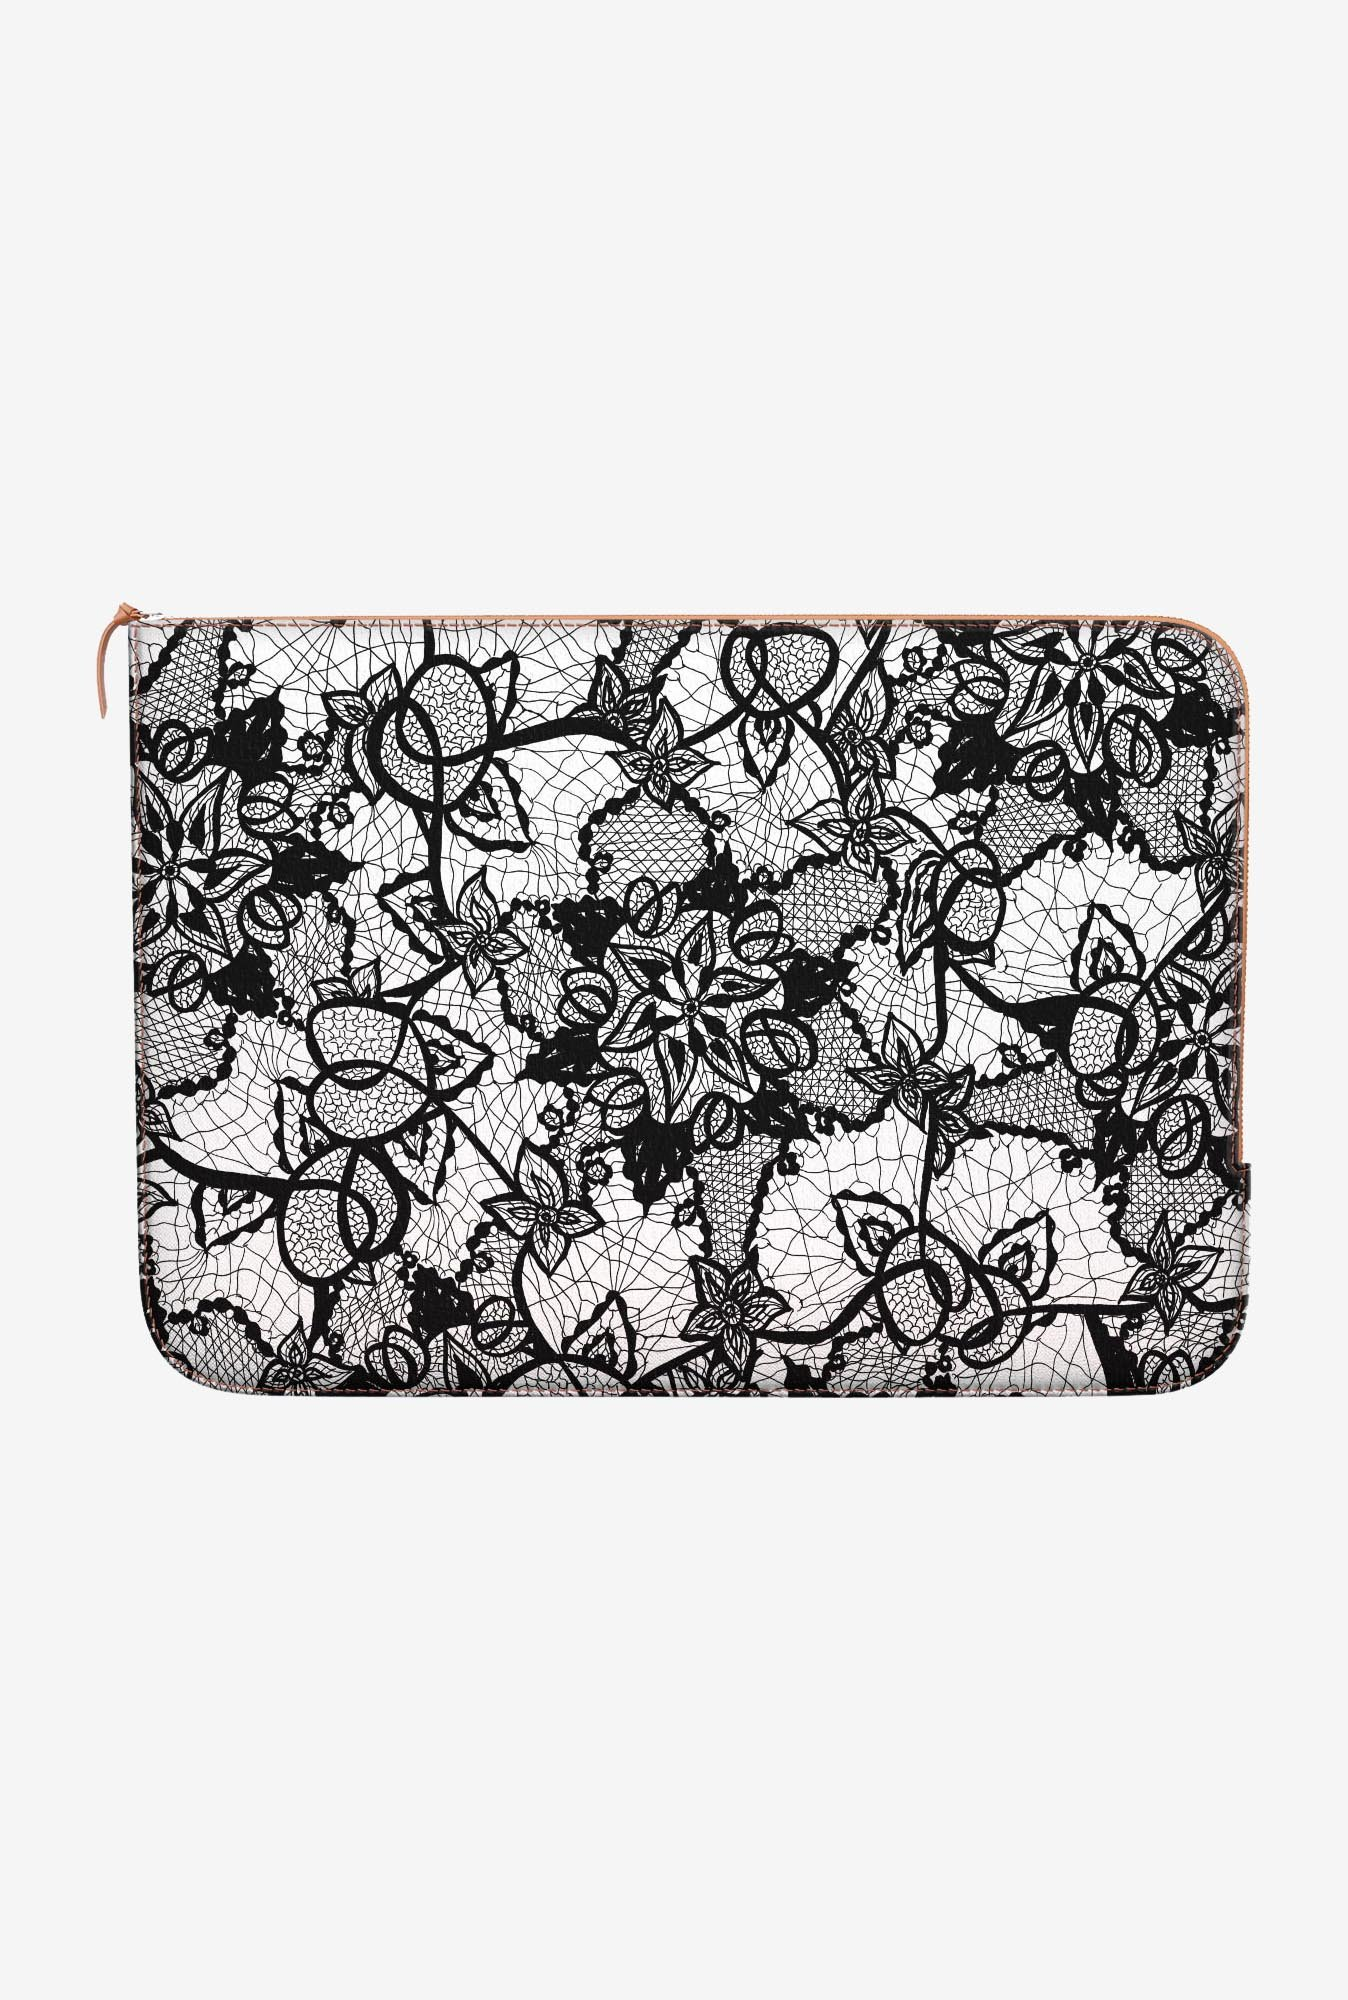 DailyObjects Lace Pattern MacBook Pro 13 Zippered Sleeve